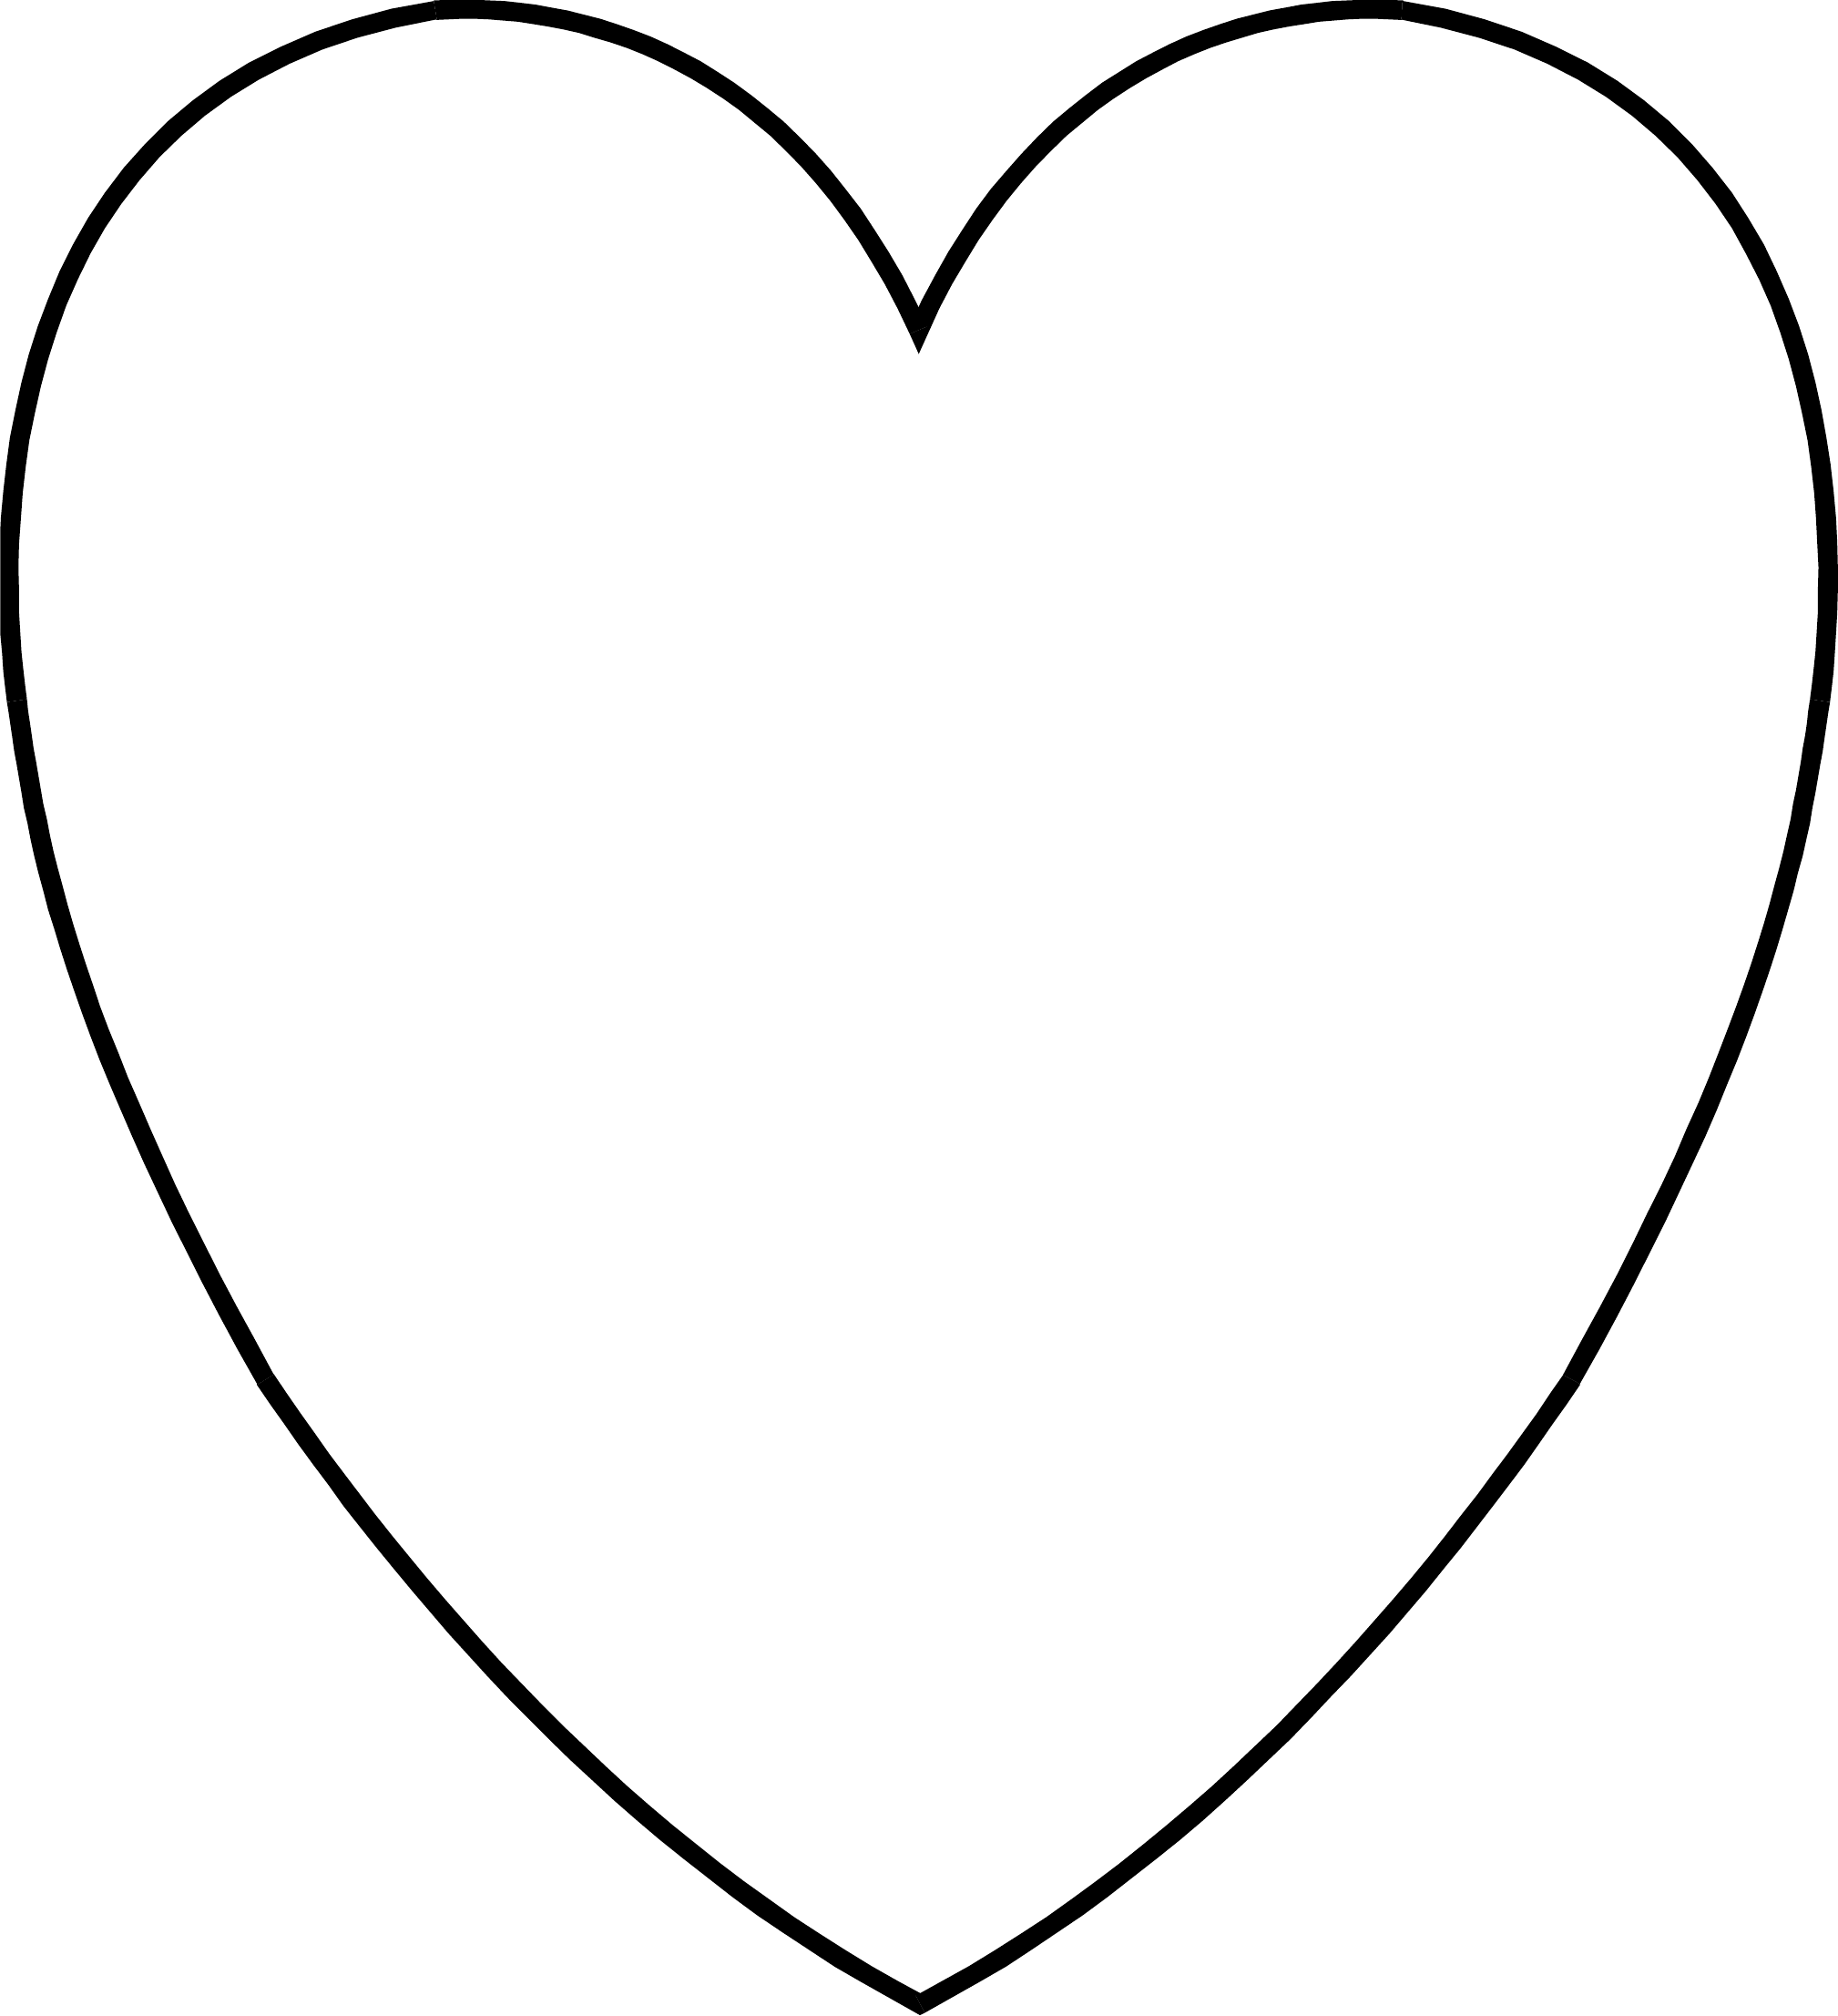 simple heart template free download